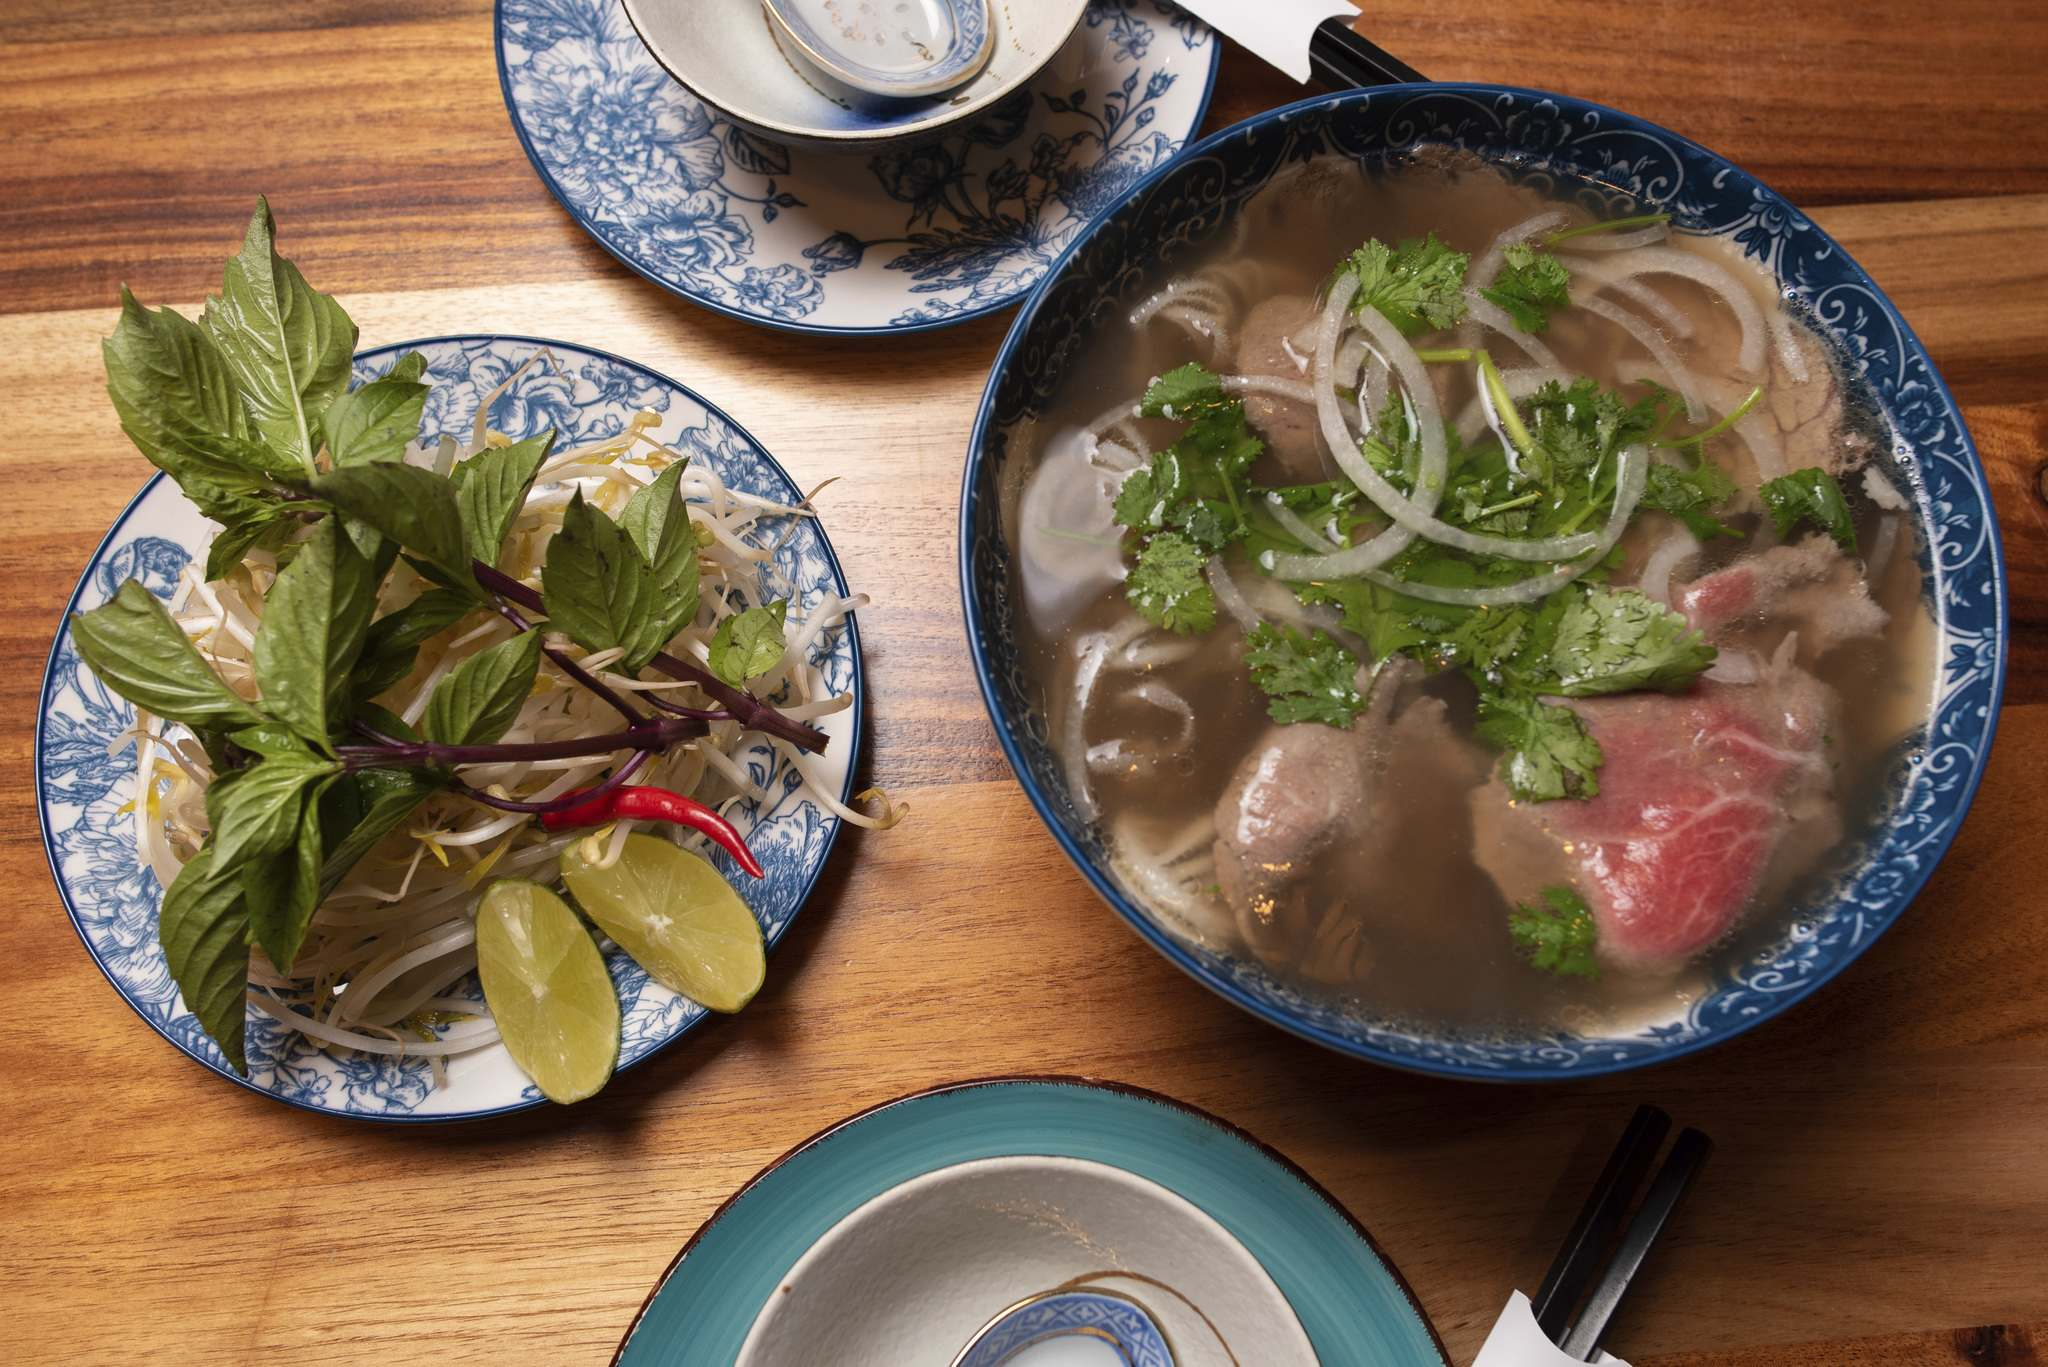 The House Special Pho at Pho Hoang Osborne.